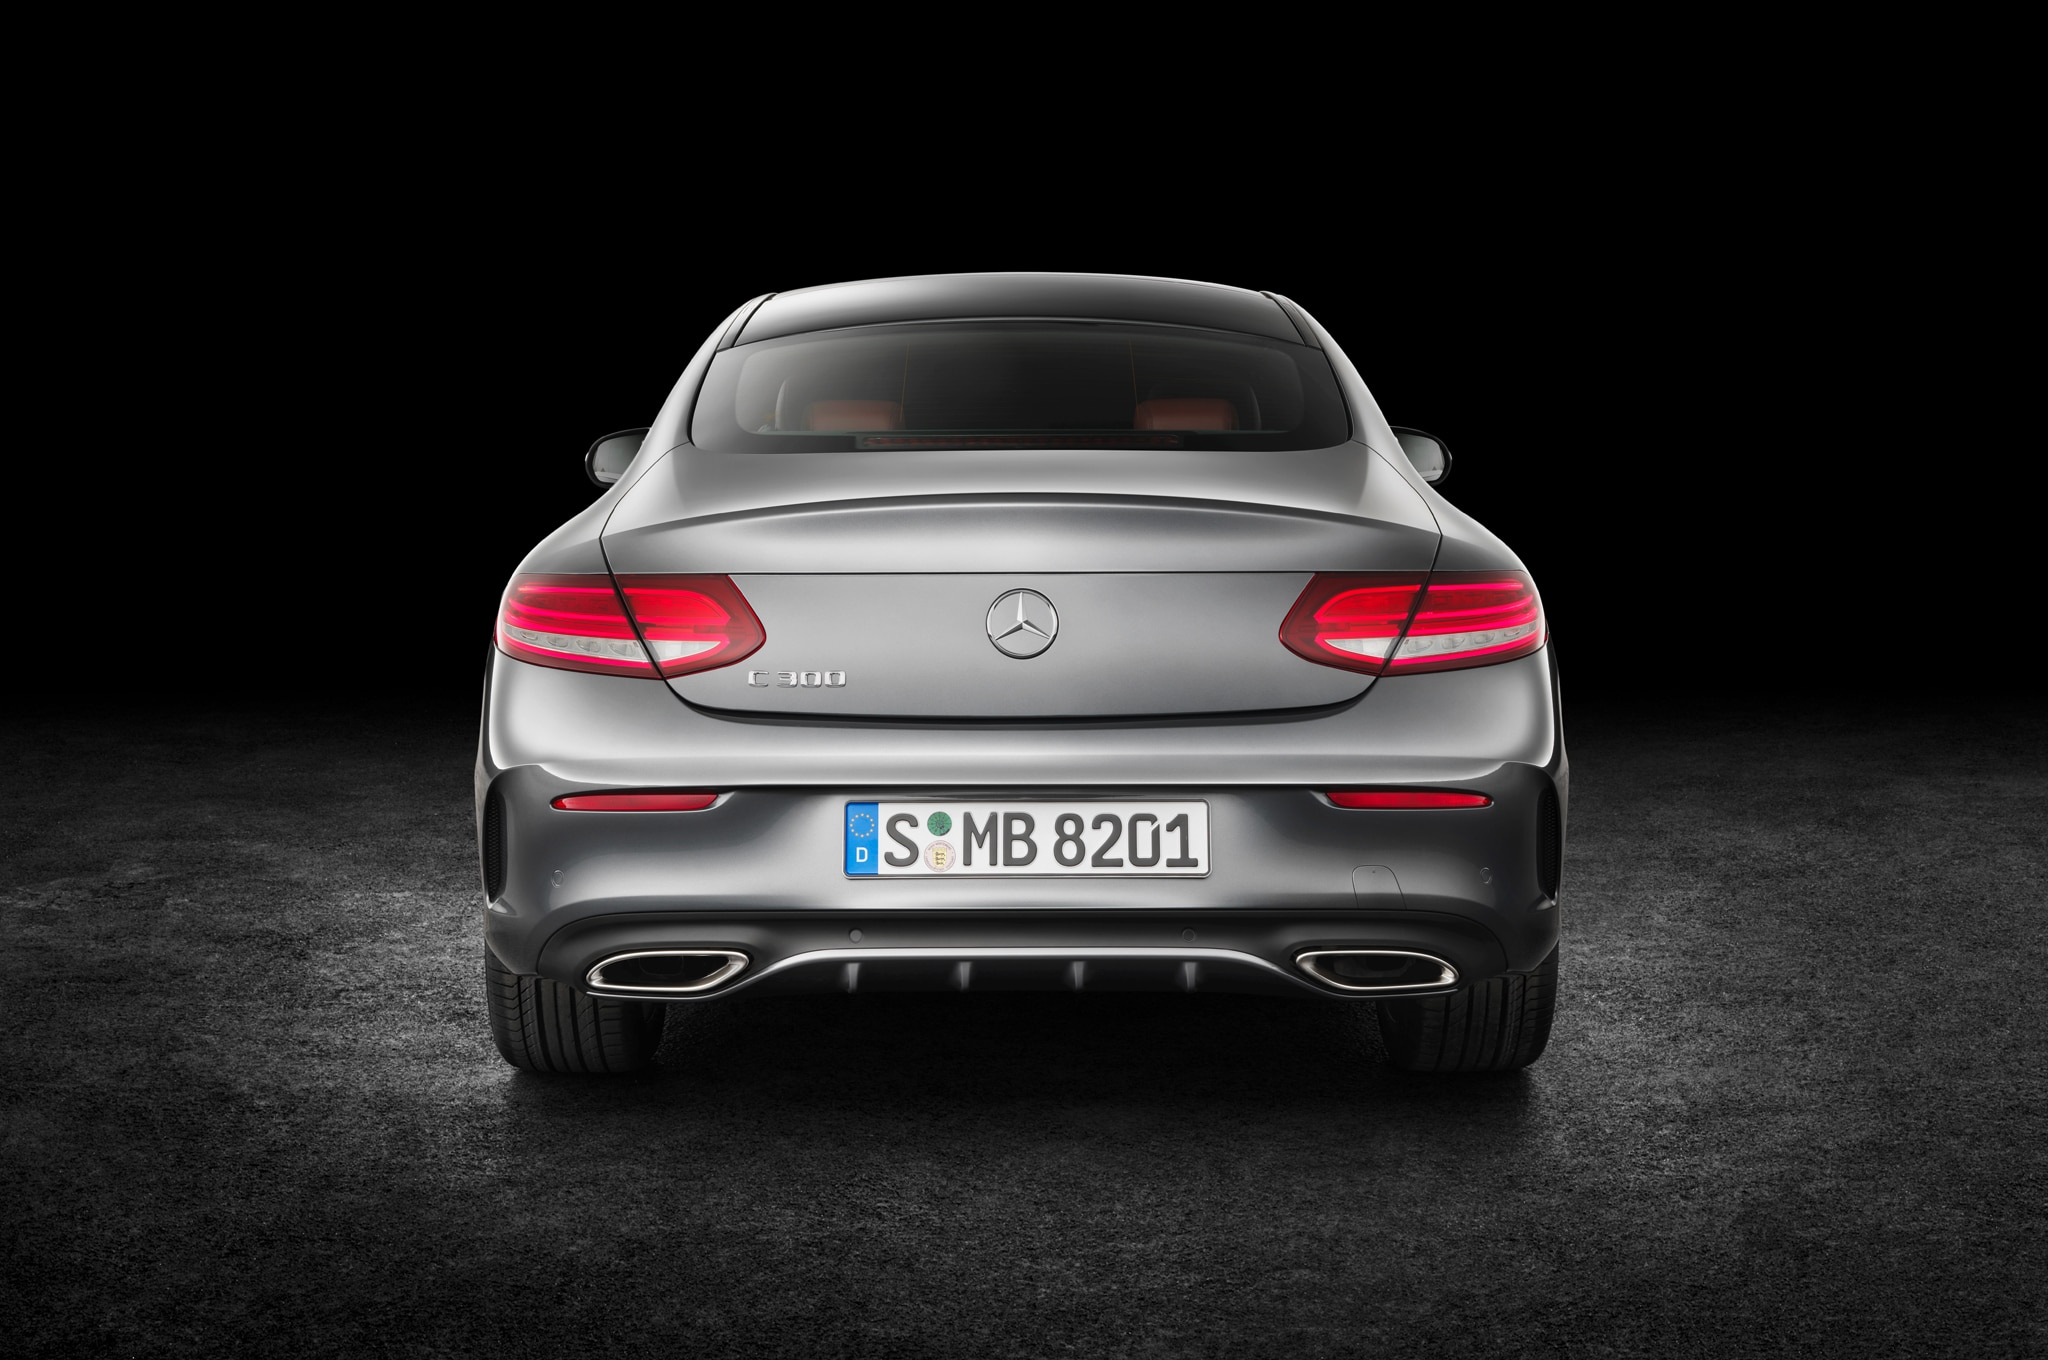 2017 MercedesBenz C300 Coupe Debuts with Fabulous TwoDoor Design